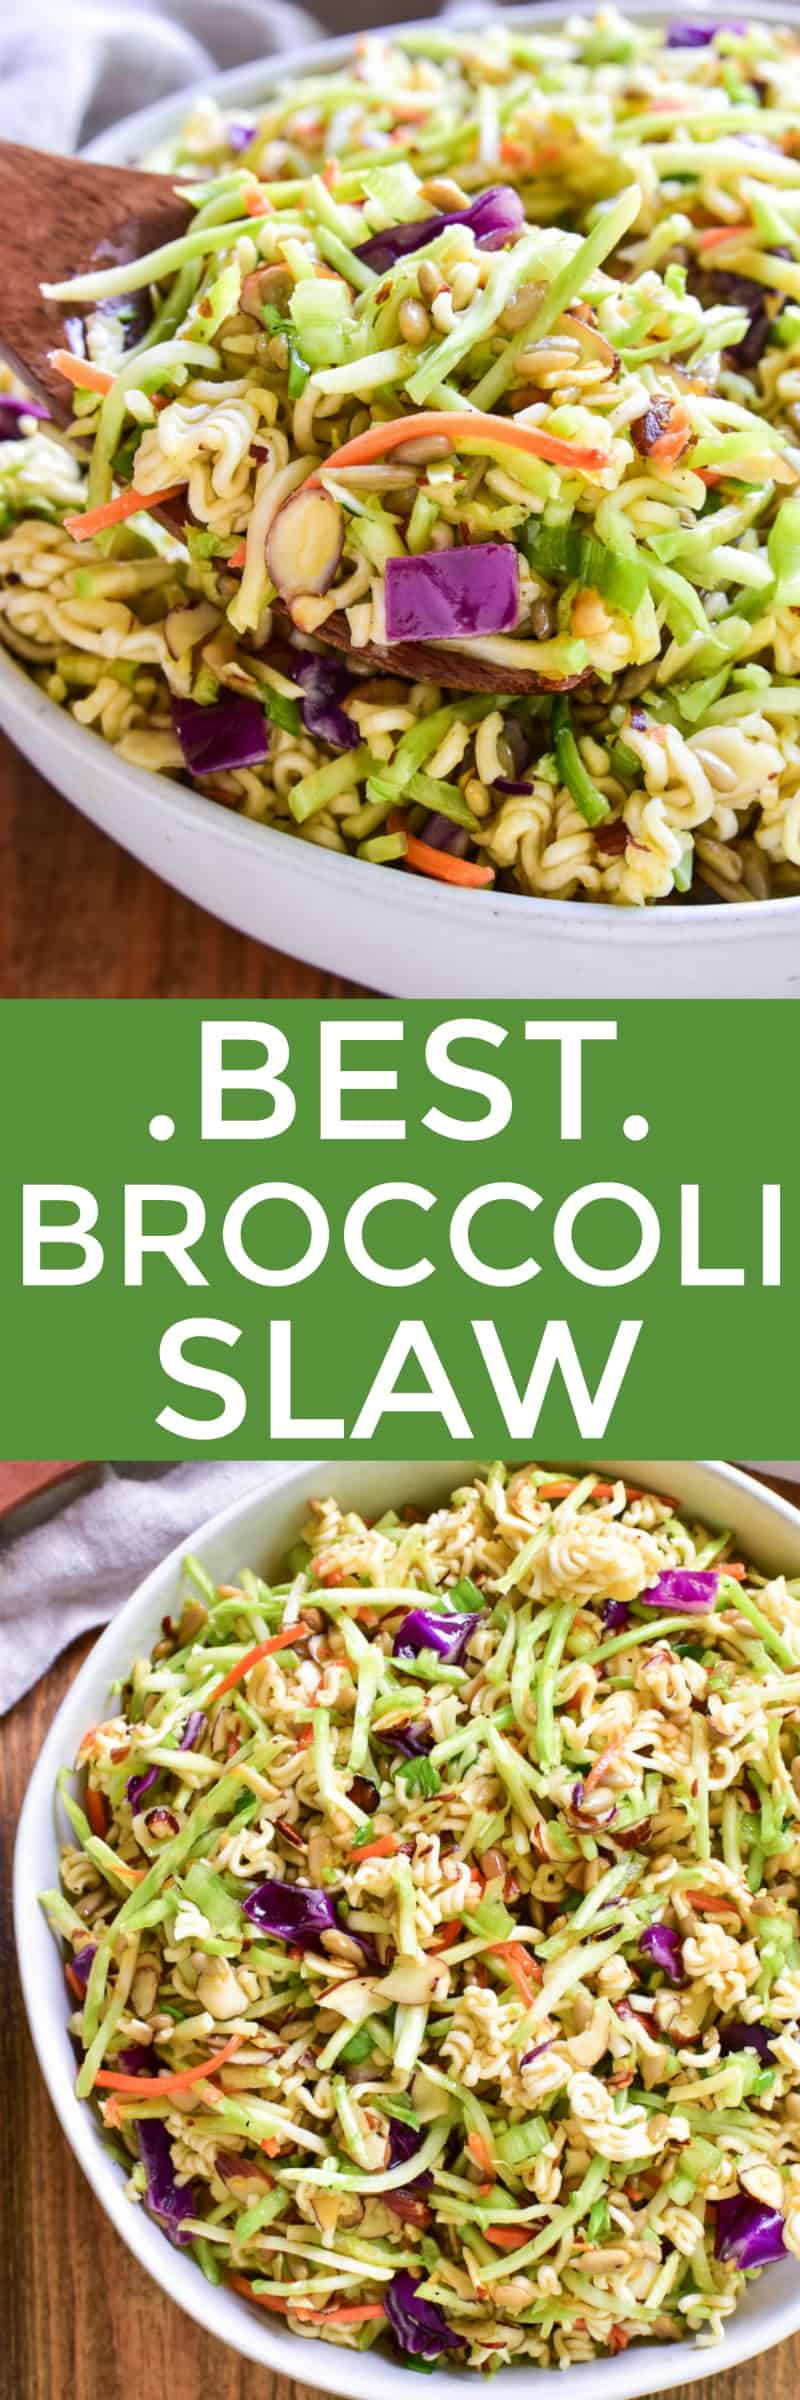 The BEST Broccoli Slaw recipe! This salad always gets rave reviews. It's loaded with broccoli, almonds, sunflower seeds, ramen noodles, and green onions and tossed in the most flavorful dressing. Perfect for end of summer picnics or year round get togethers, if you love cole slaw, you'll love this delicious broccoli slaw twist!